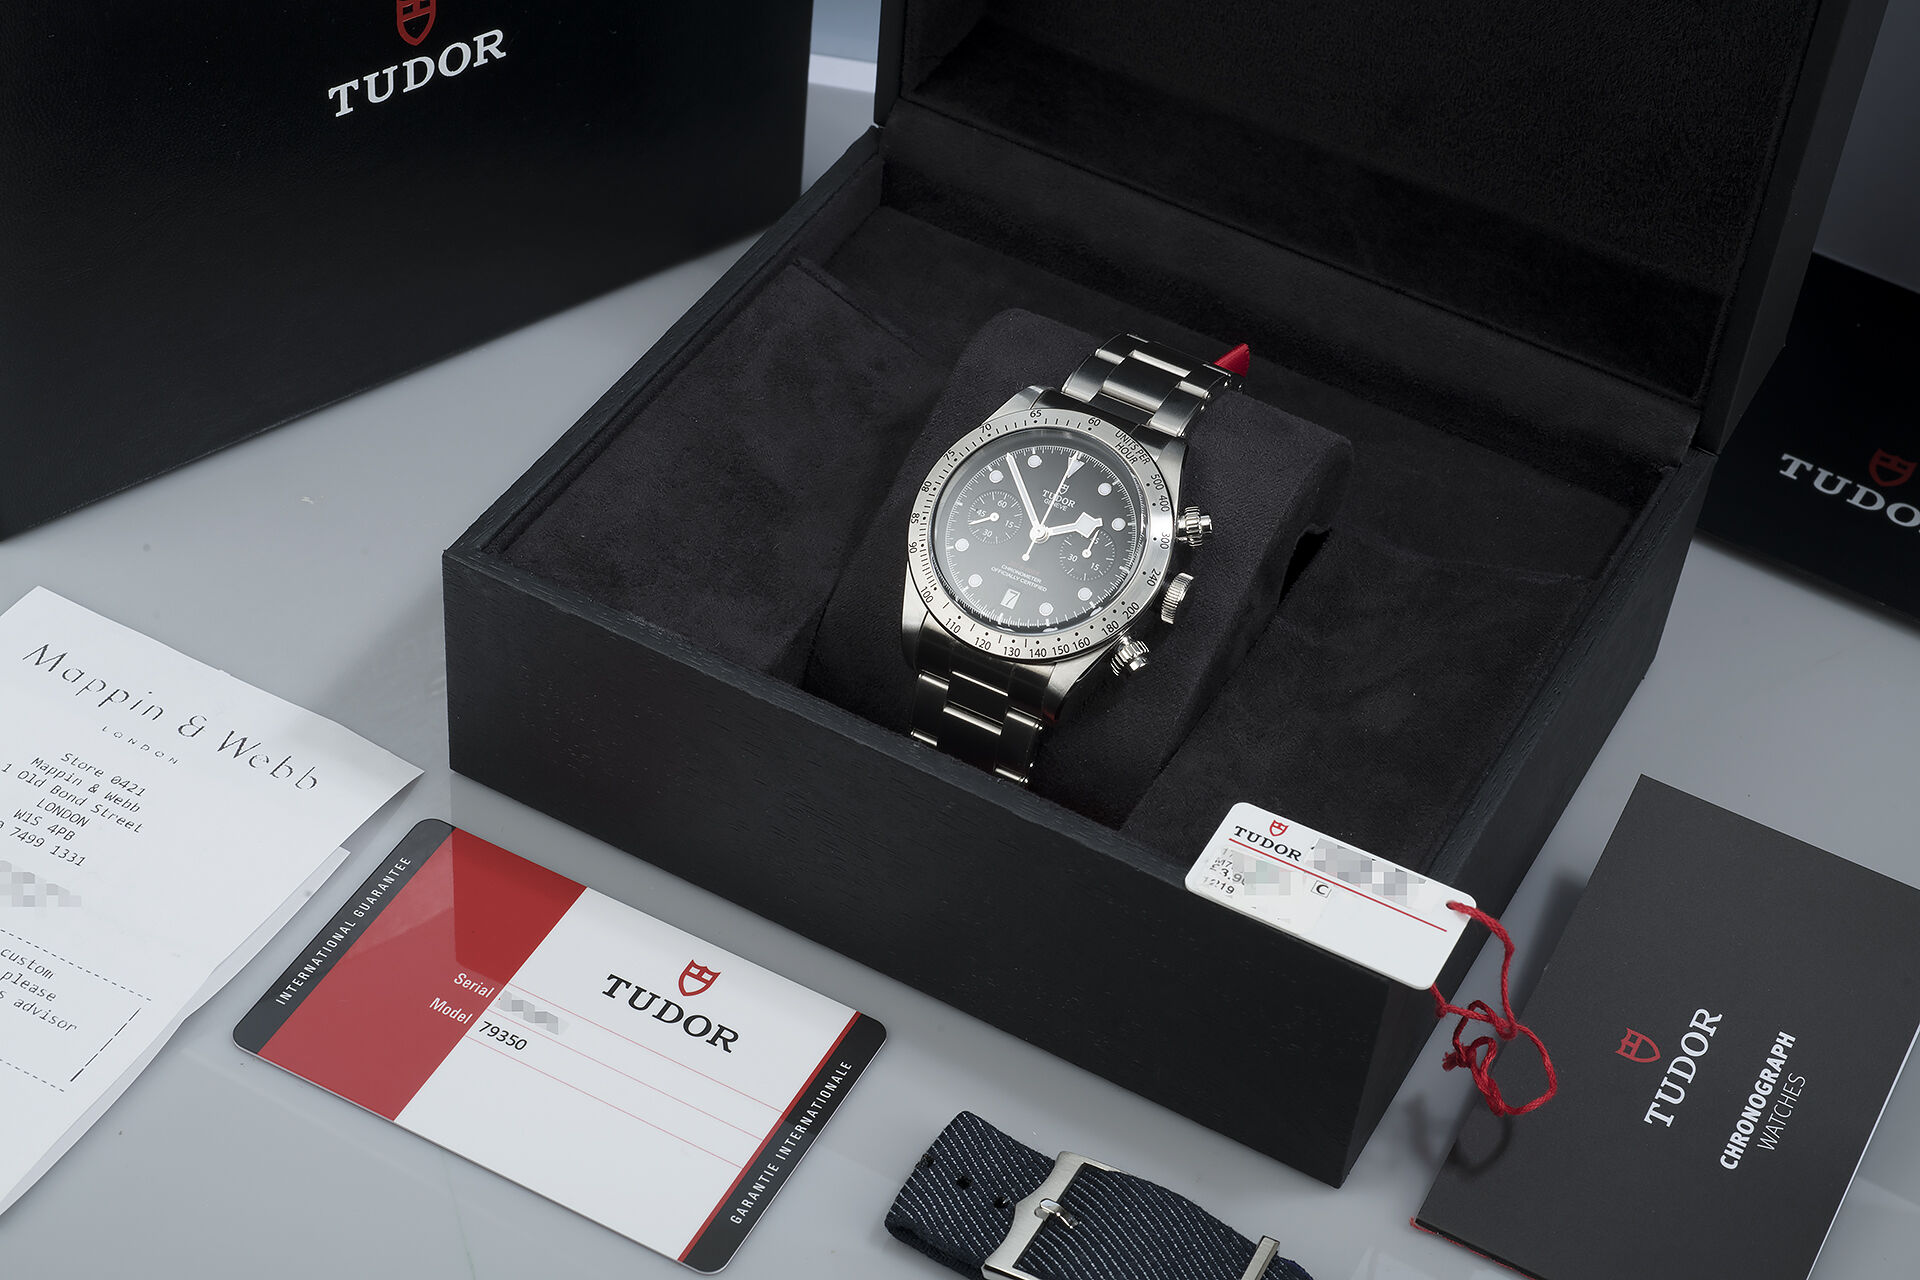 ref 79350 | 'Brand New - 5 Year Warranty' | Tudor Black Bay